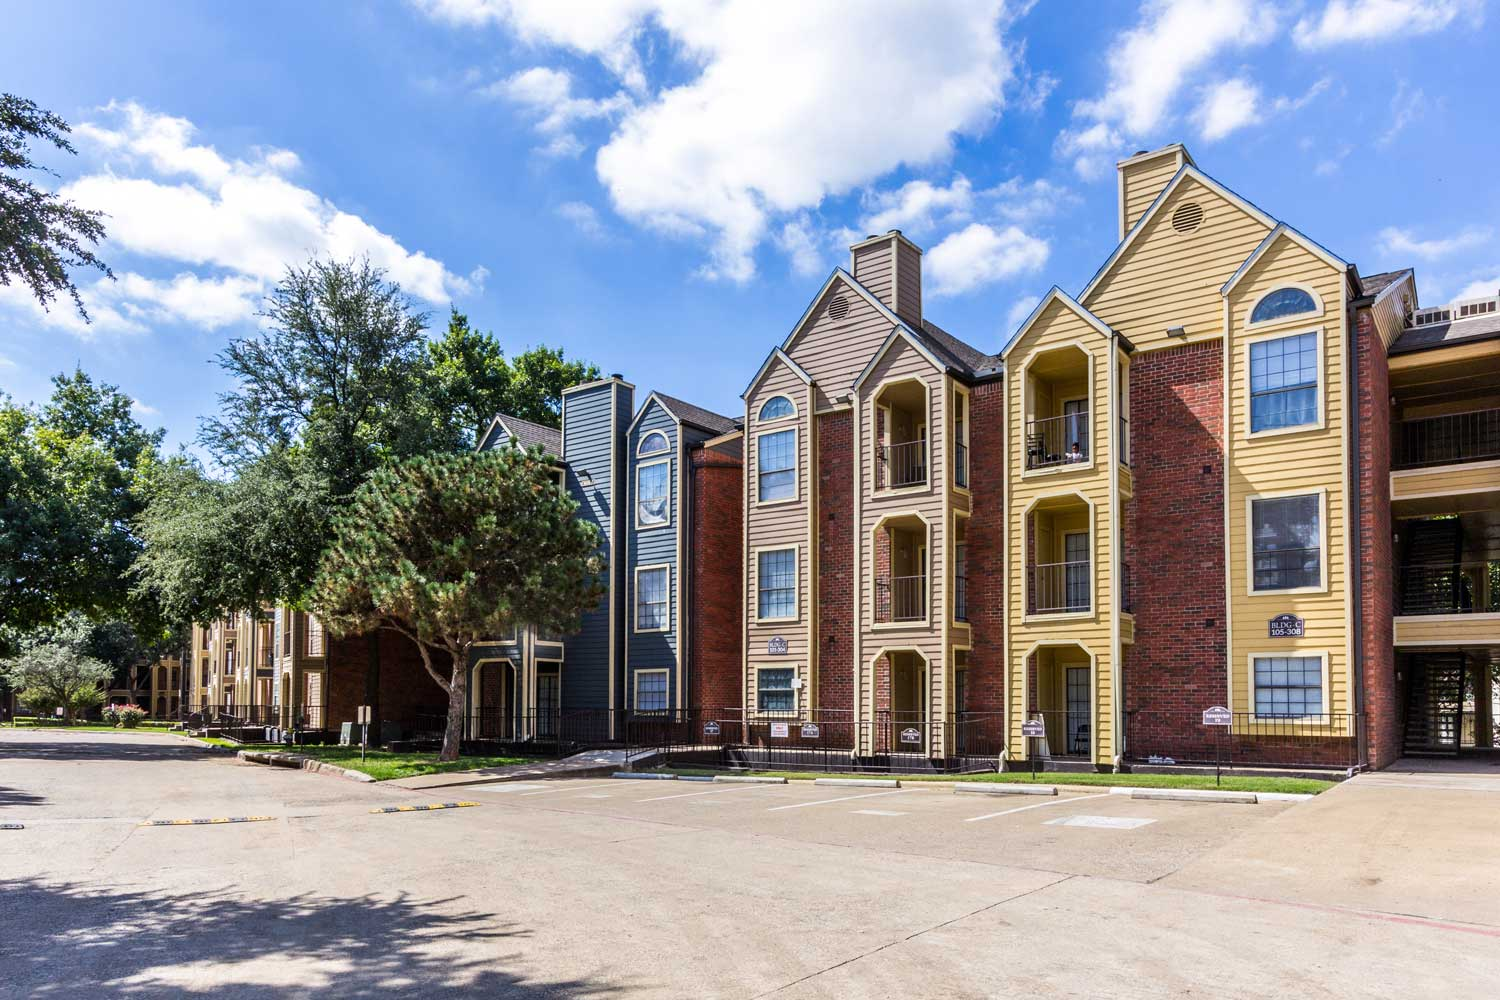 Vast and Spacious Parking Lotat Forest Hills Apartments in Dallas, TX